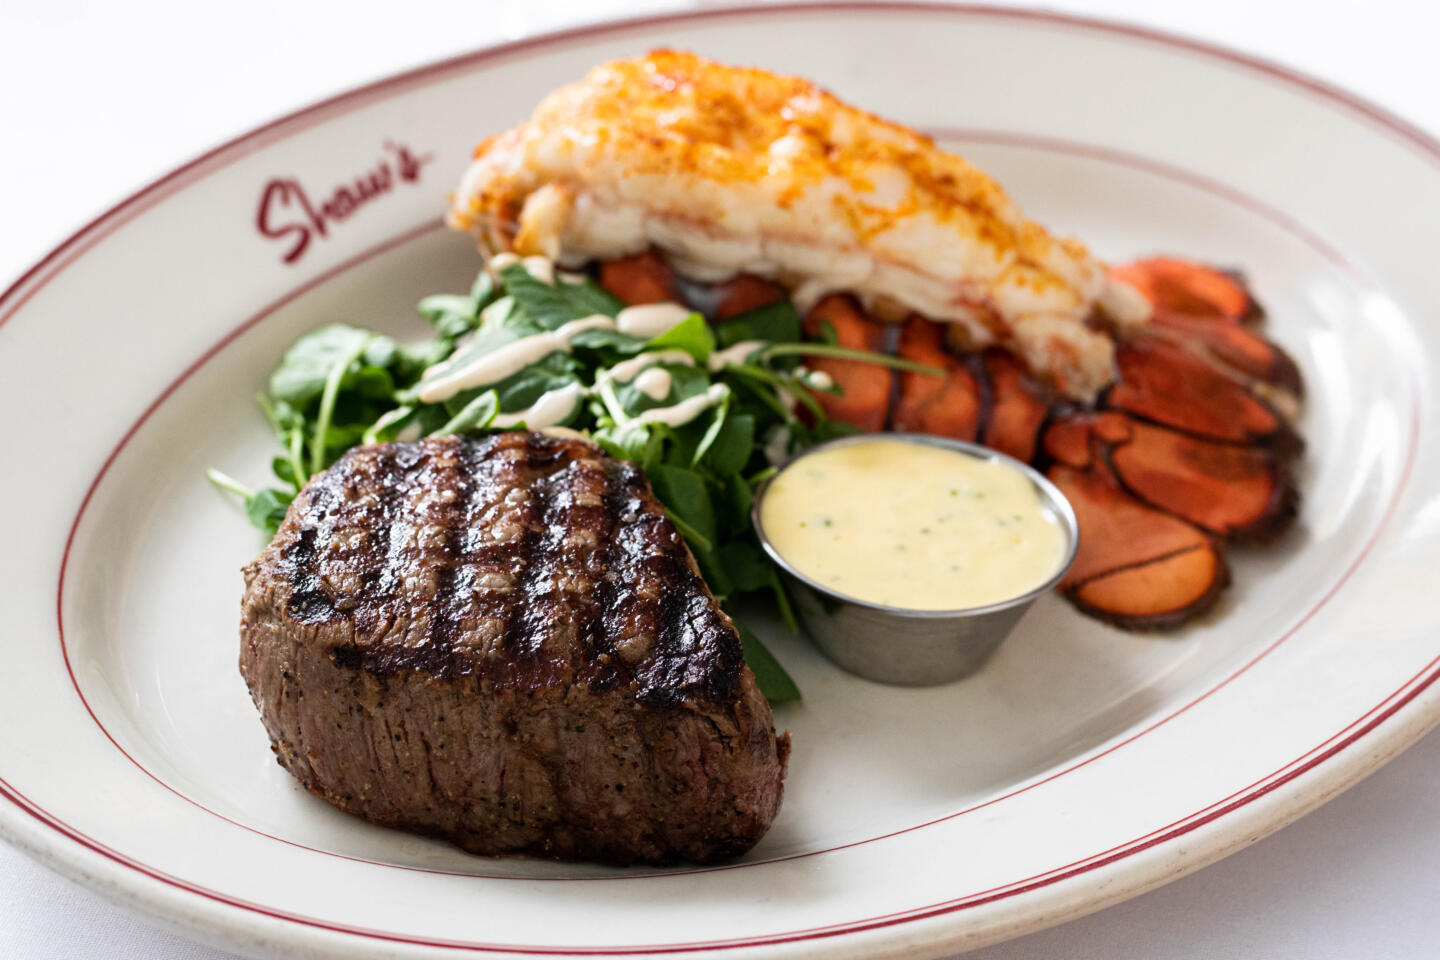 Shaw's lobster and filet